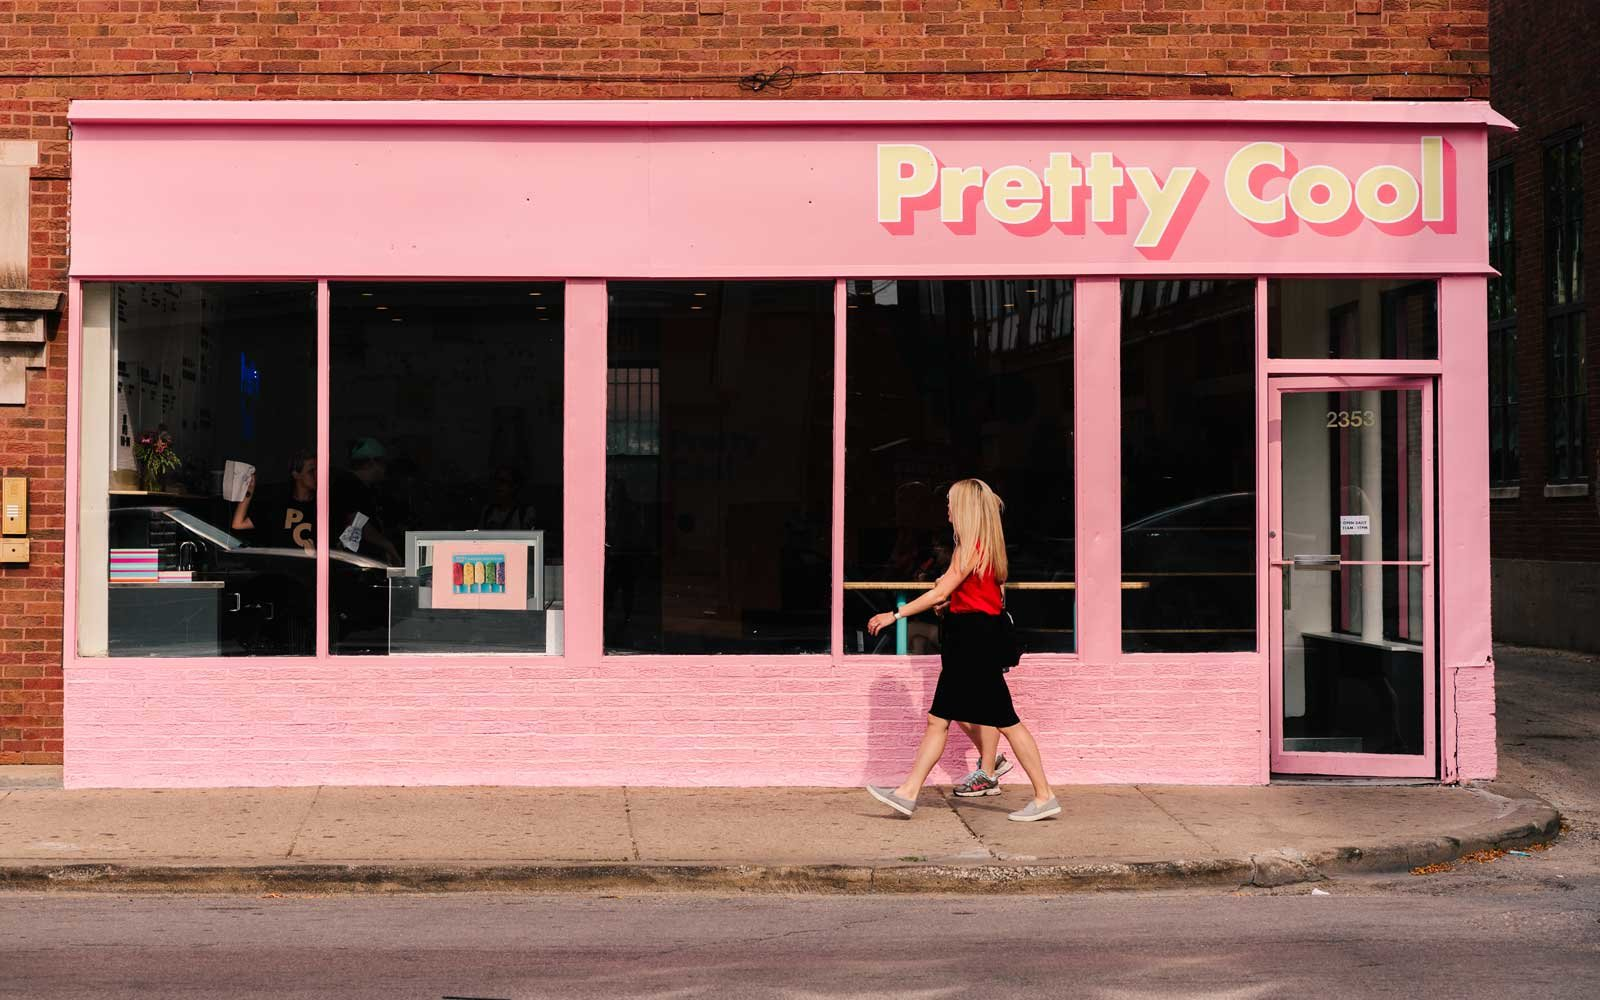 3 Up-and-coming Neighborhoods to See on Your Next Visit to Chicago